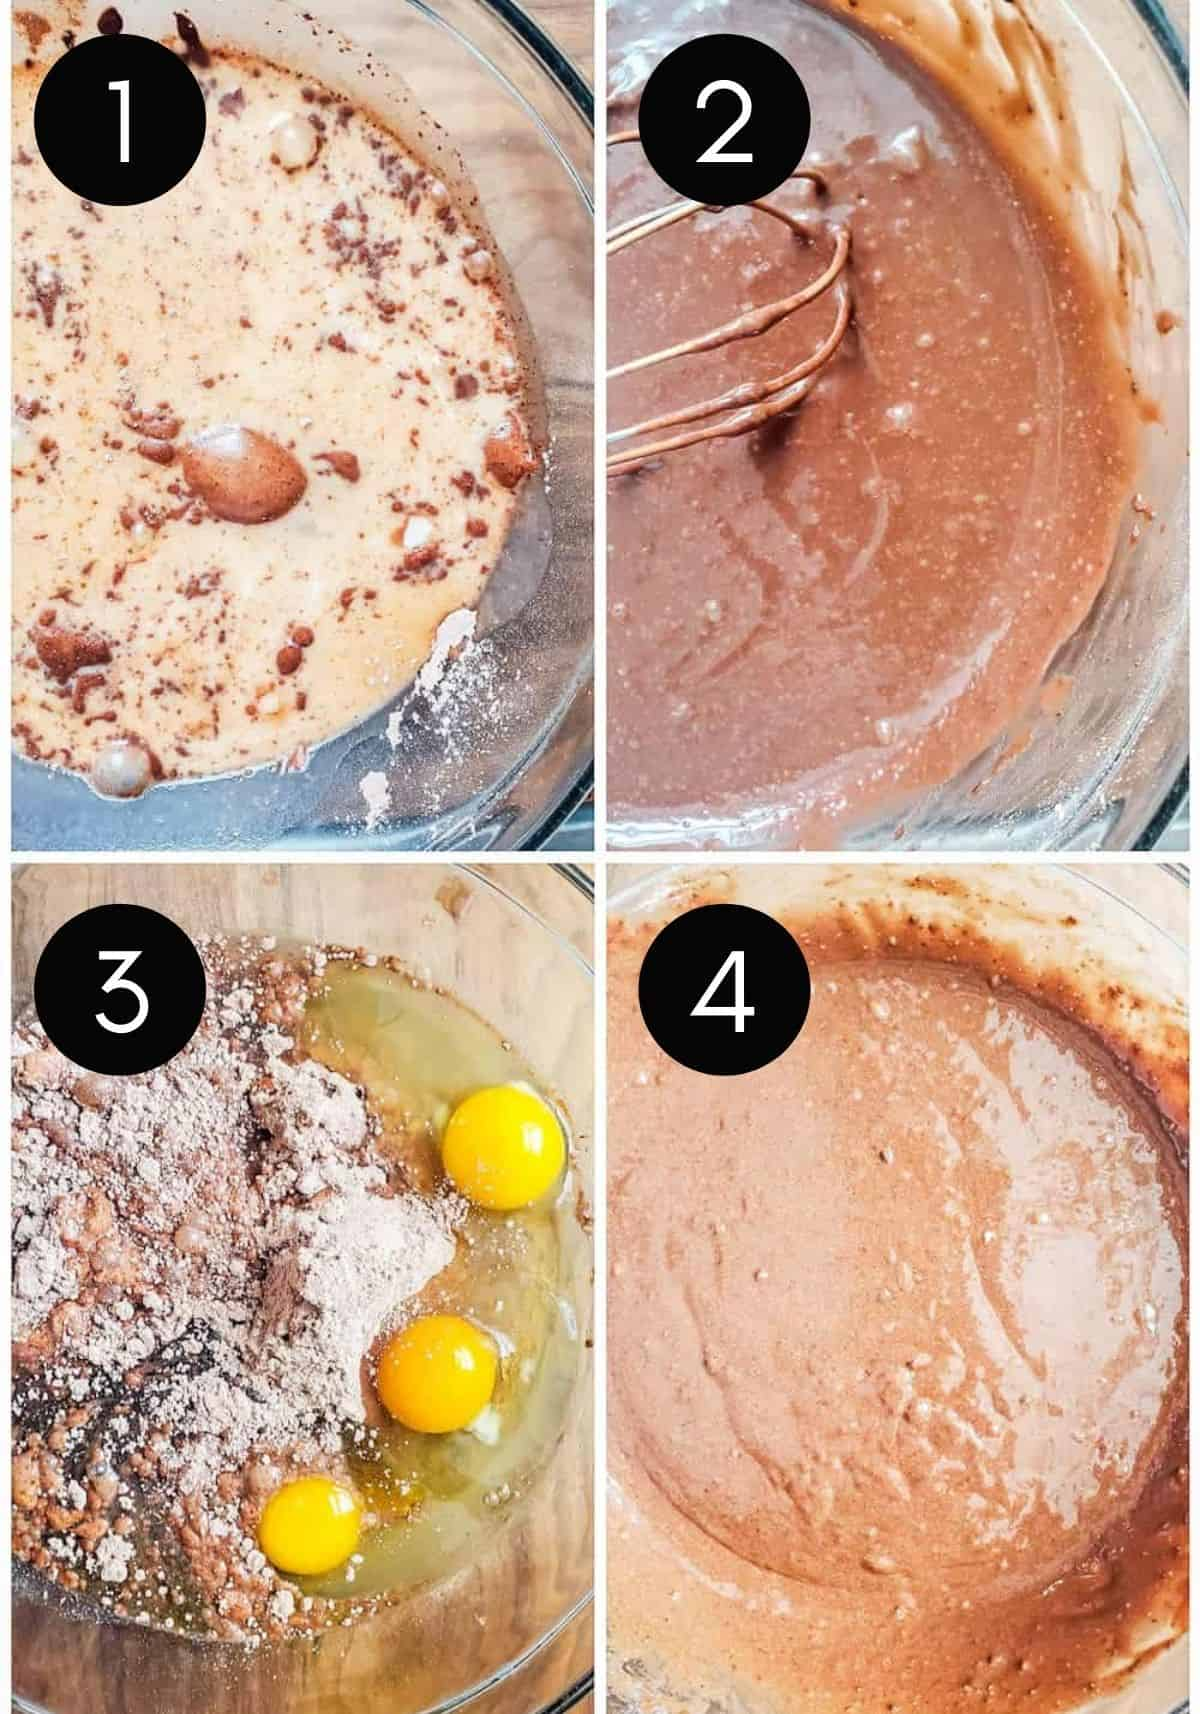 Four prep image collage showing cake and pudding be made with four numbered steps.